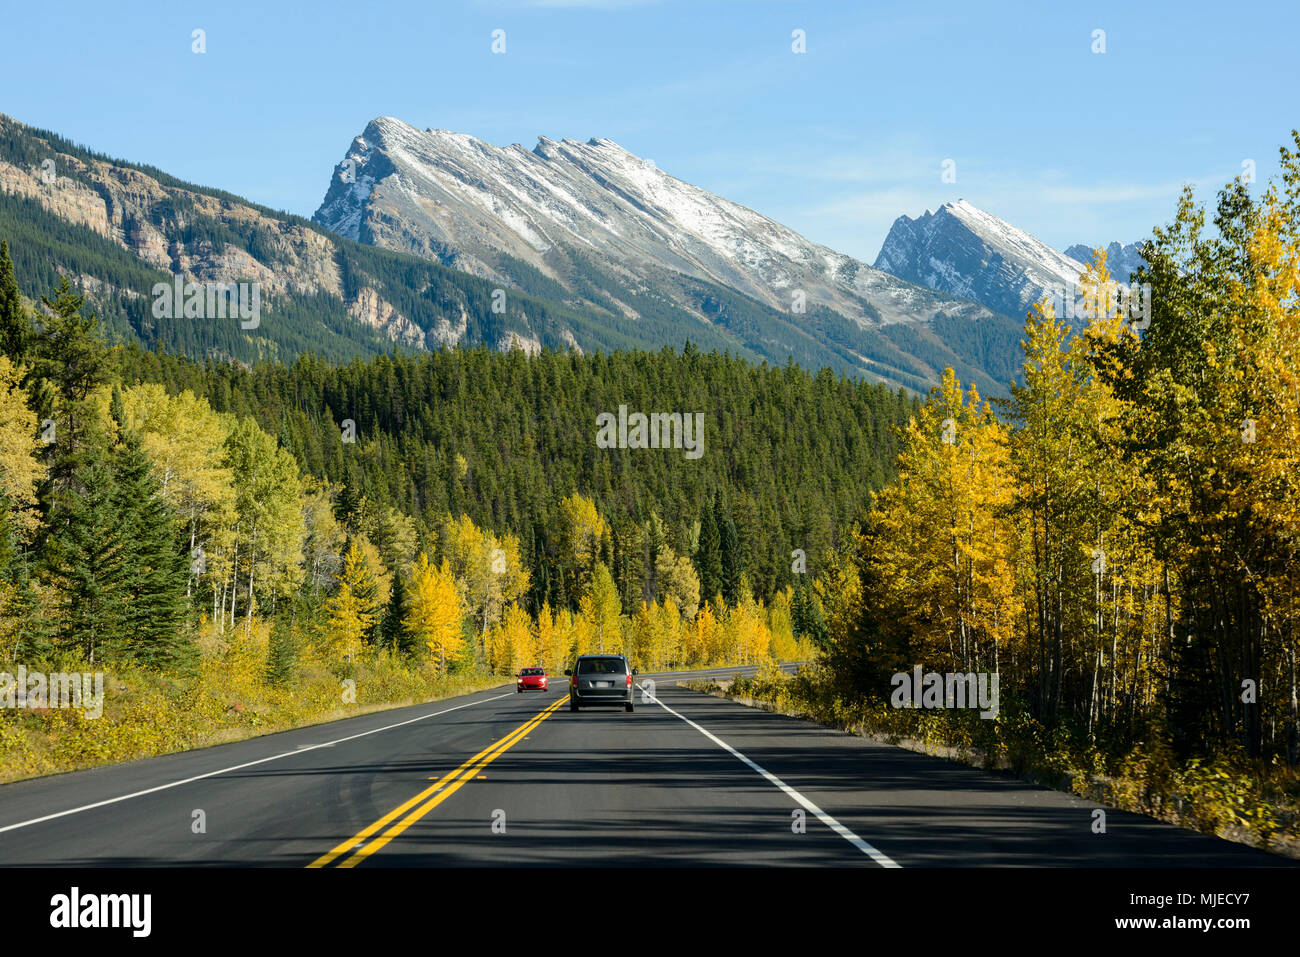 Icefields AB-93 road, Rocky Mountains, car, adventure, trip, line, marking, mountain, forest - Stock Image